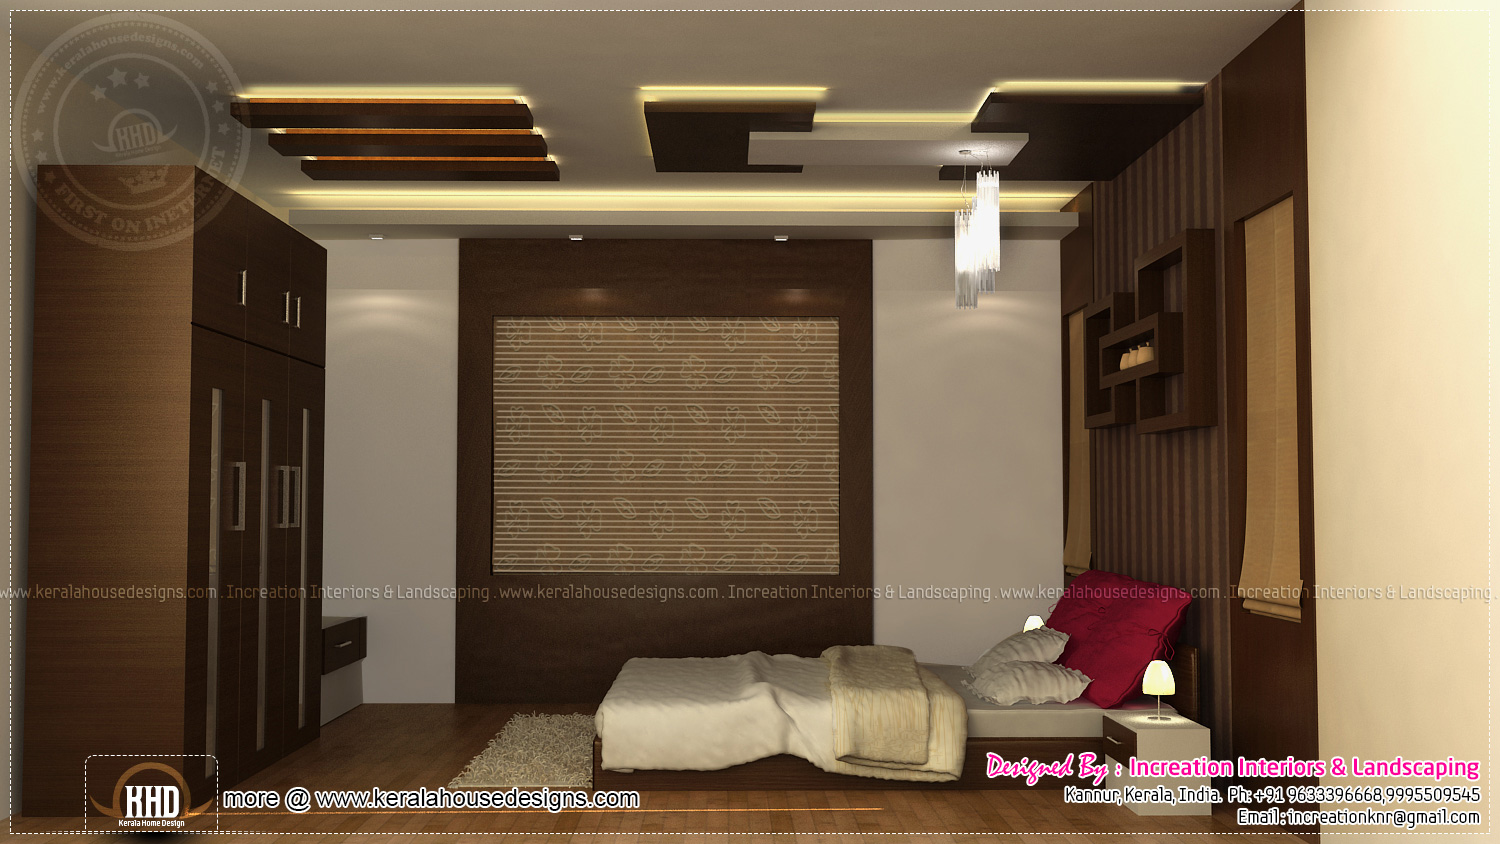 Interior designs by increation kannur kerala kerala for Interior design pictures